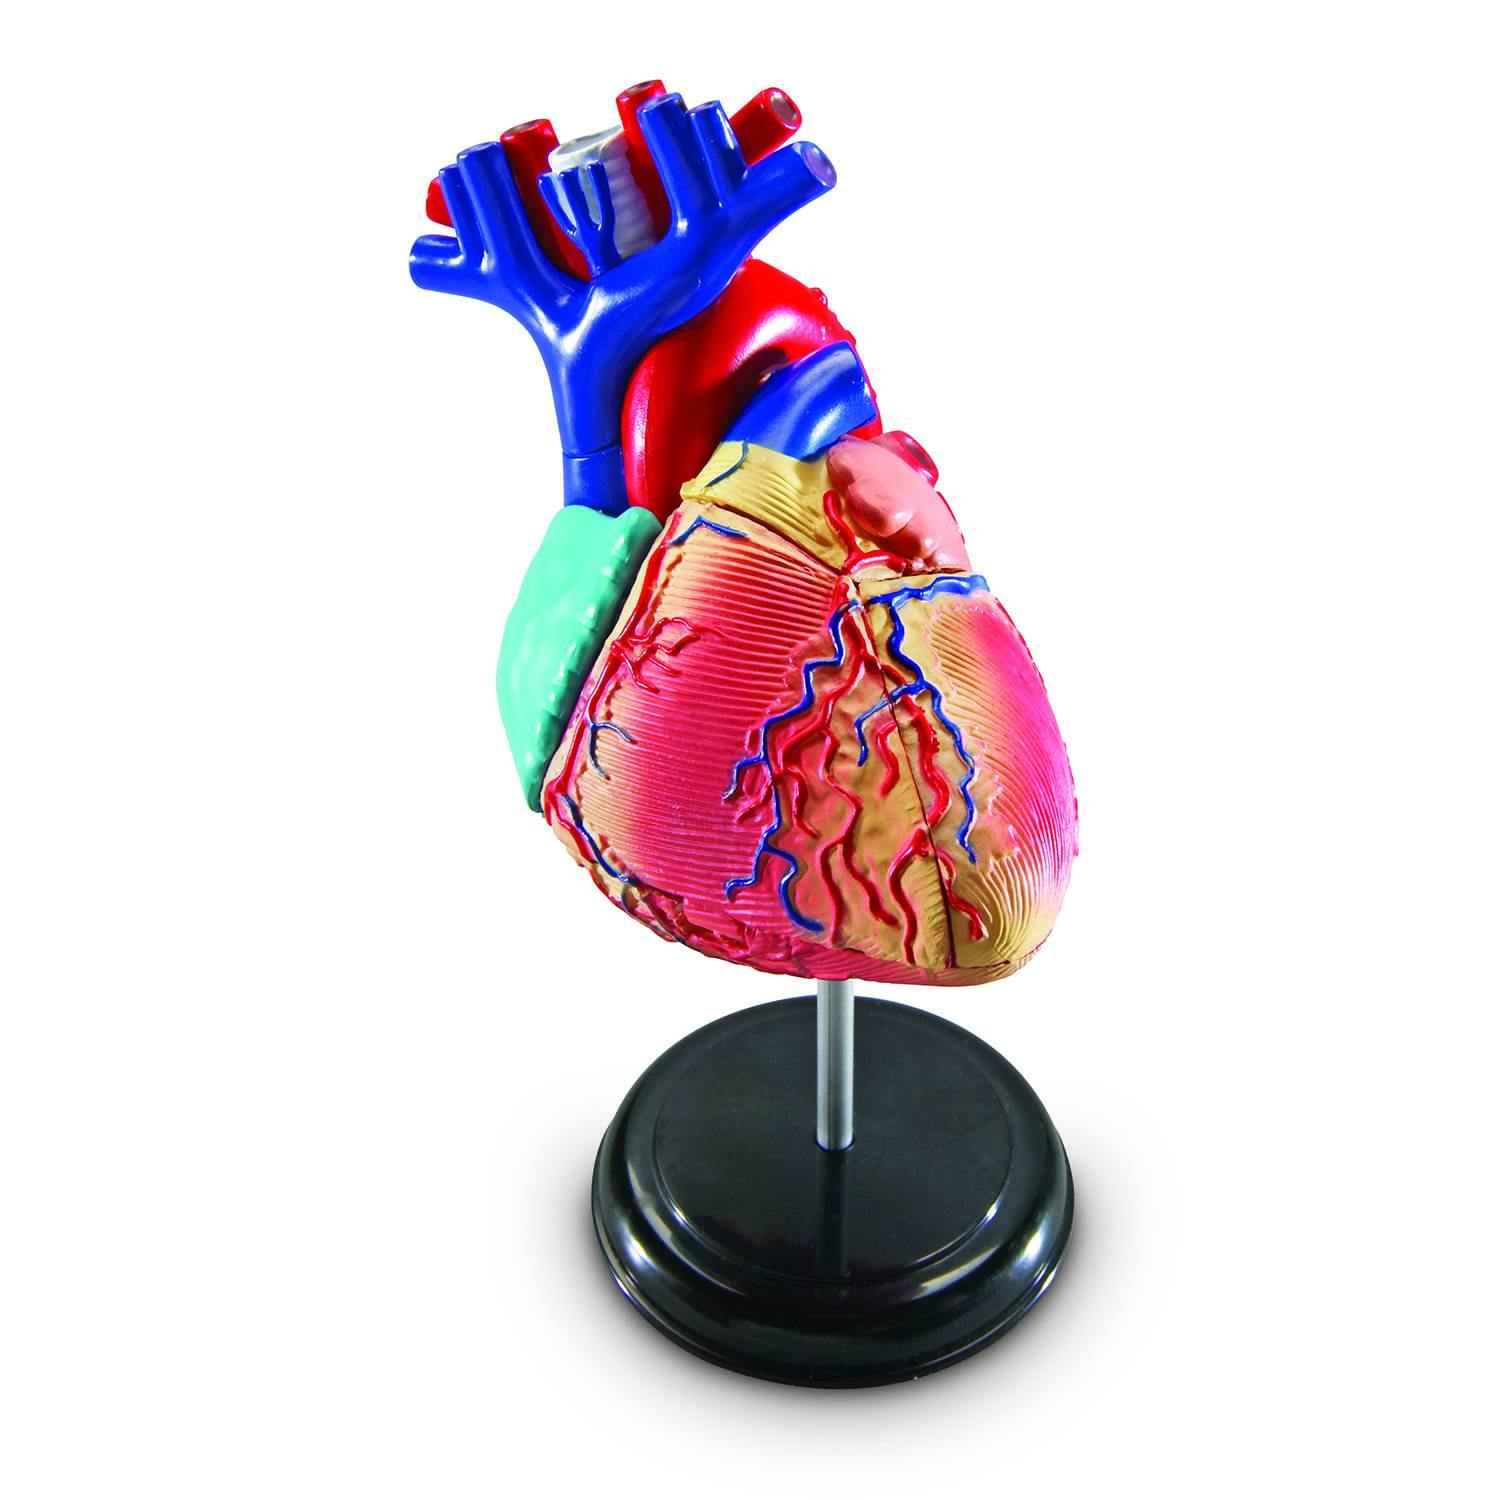 Heart Anatomy Model Kit 4